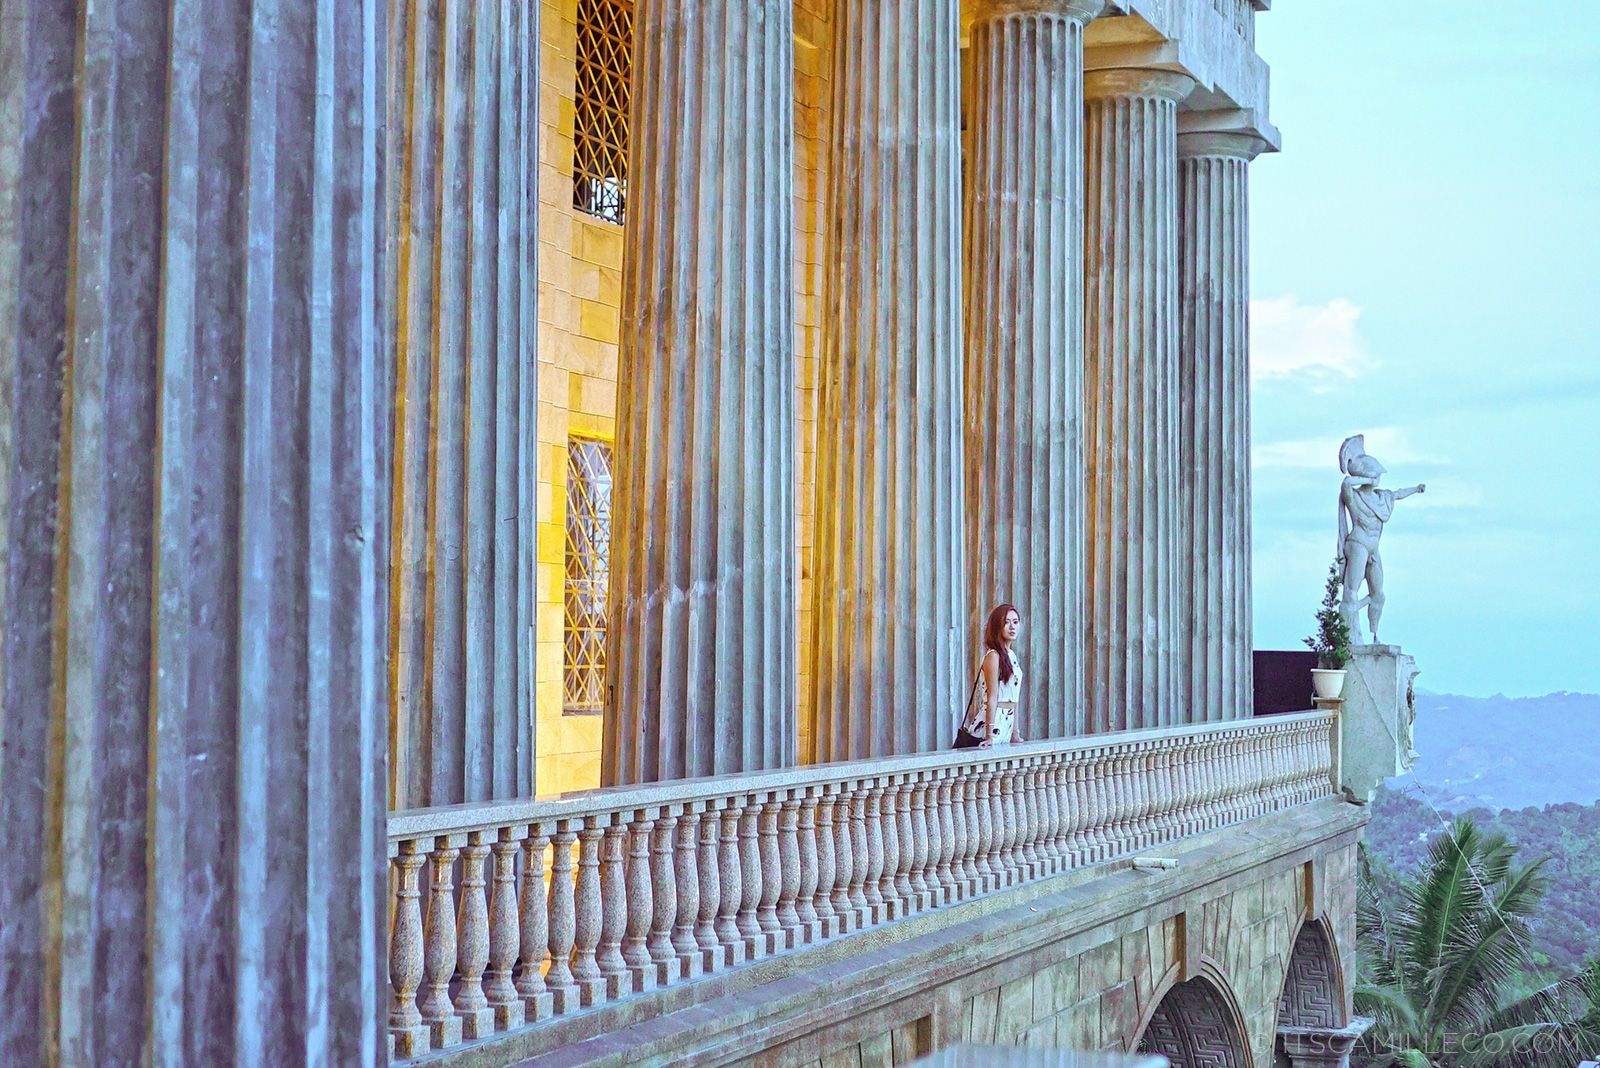 Temple Of Leah - www.itscamilleco.com